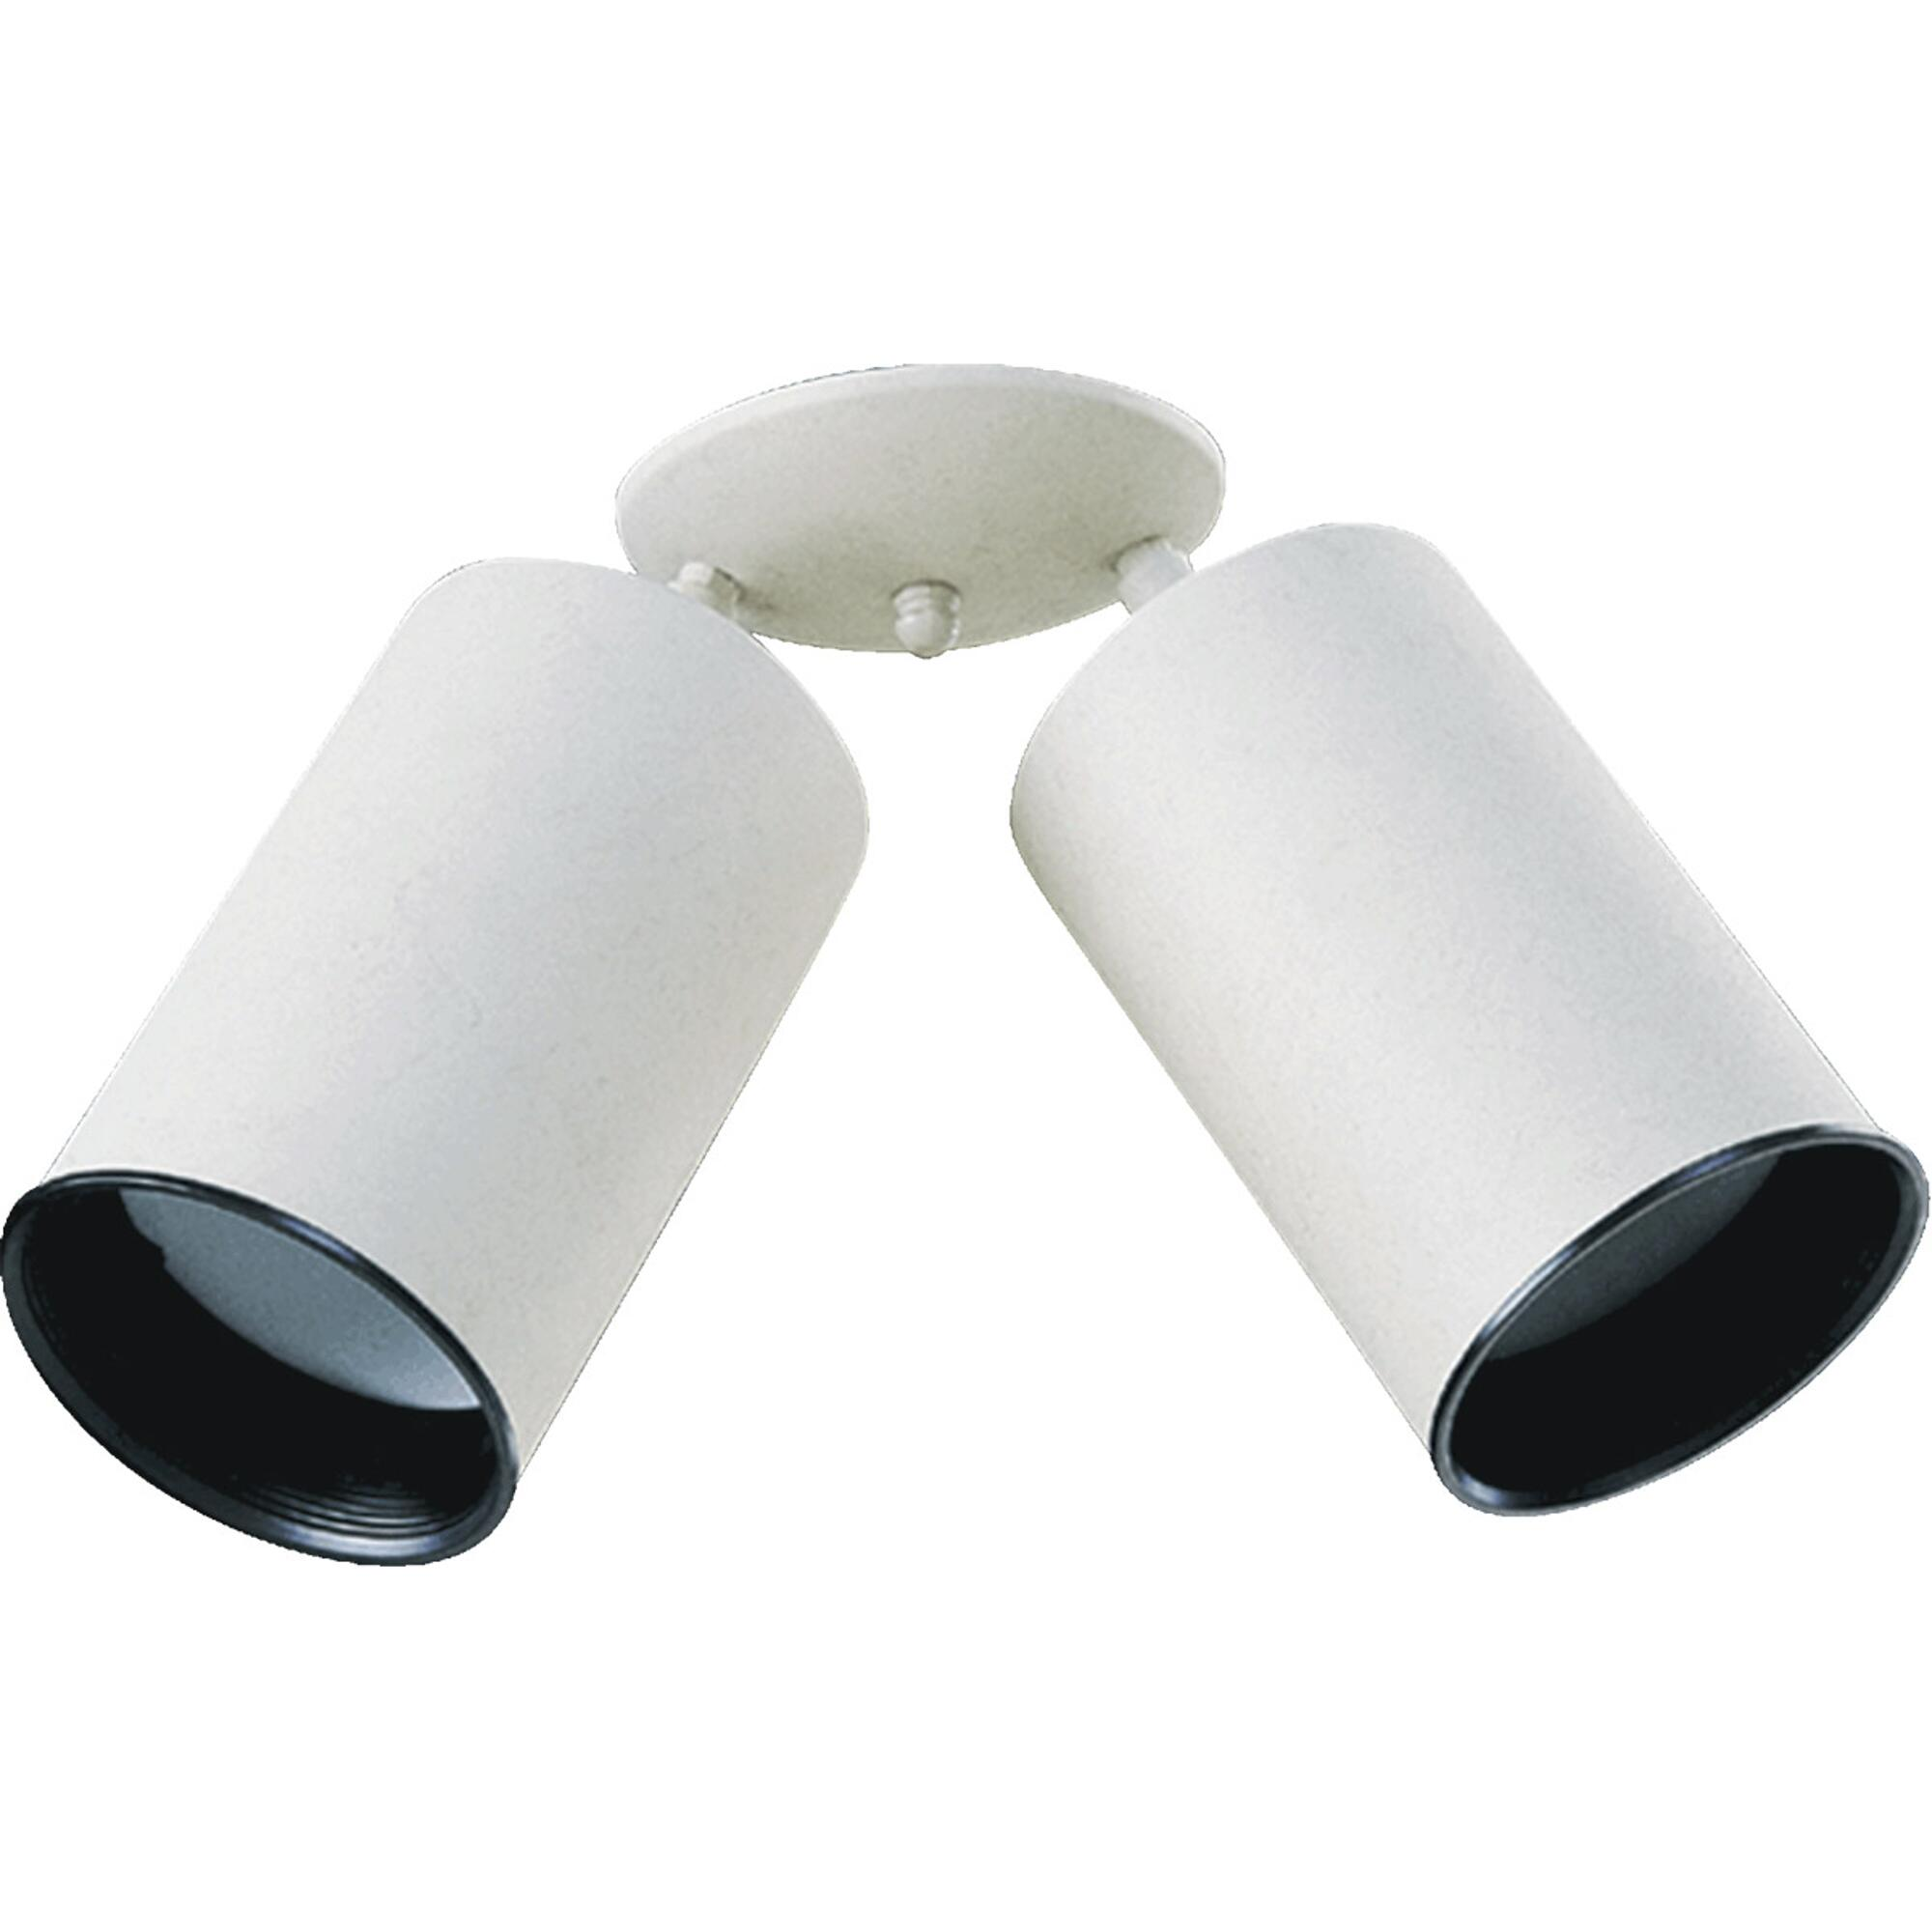 2-Light Cylinder Bullet Directional Spot Light Fully Adjustable White Steel Can Lamp with Black Metal Baffle